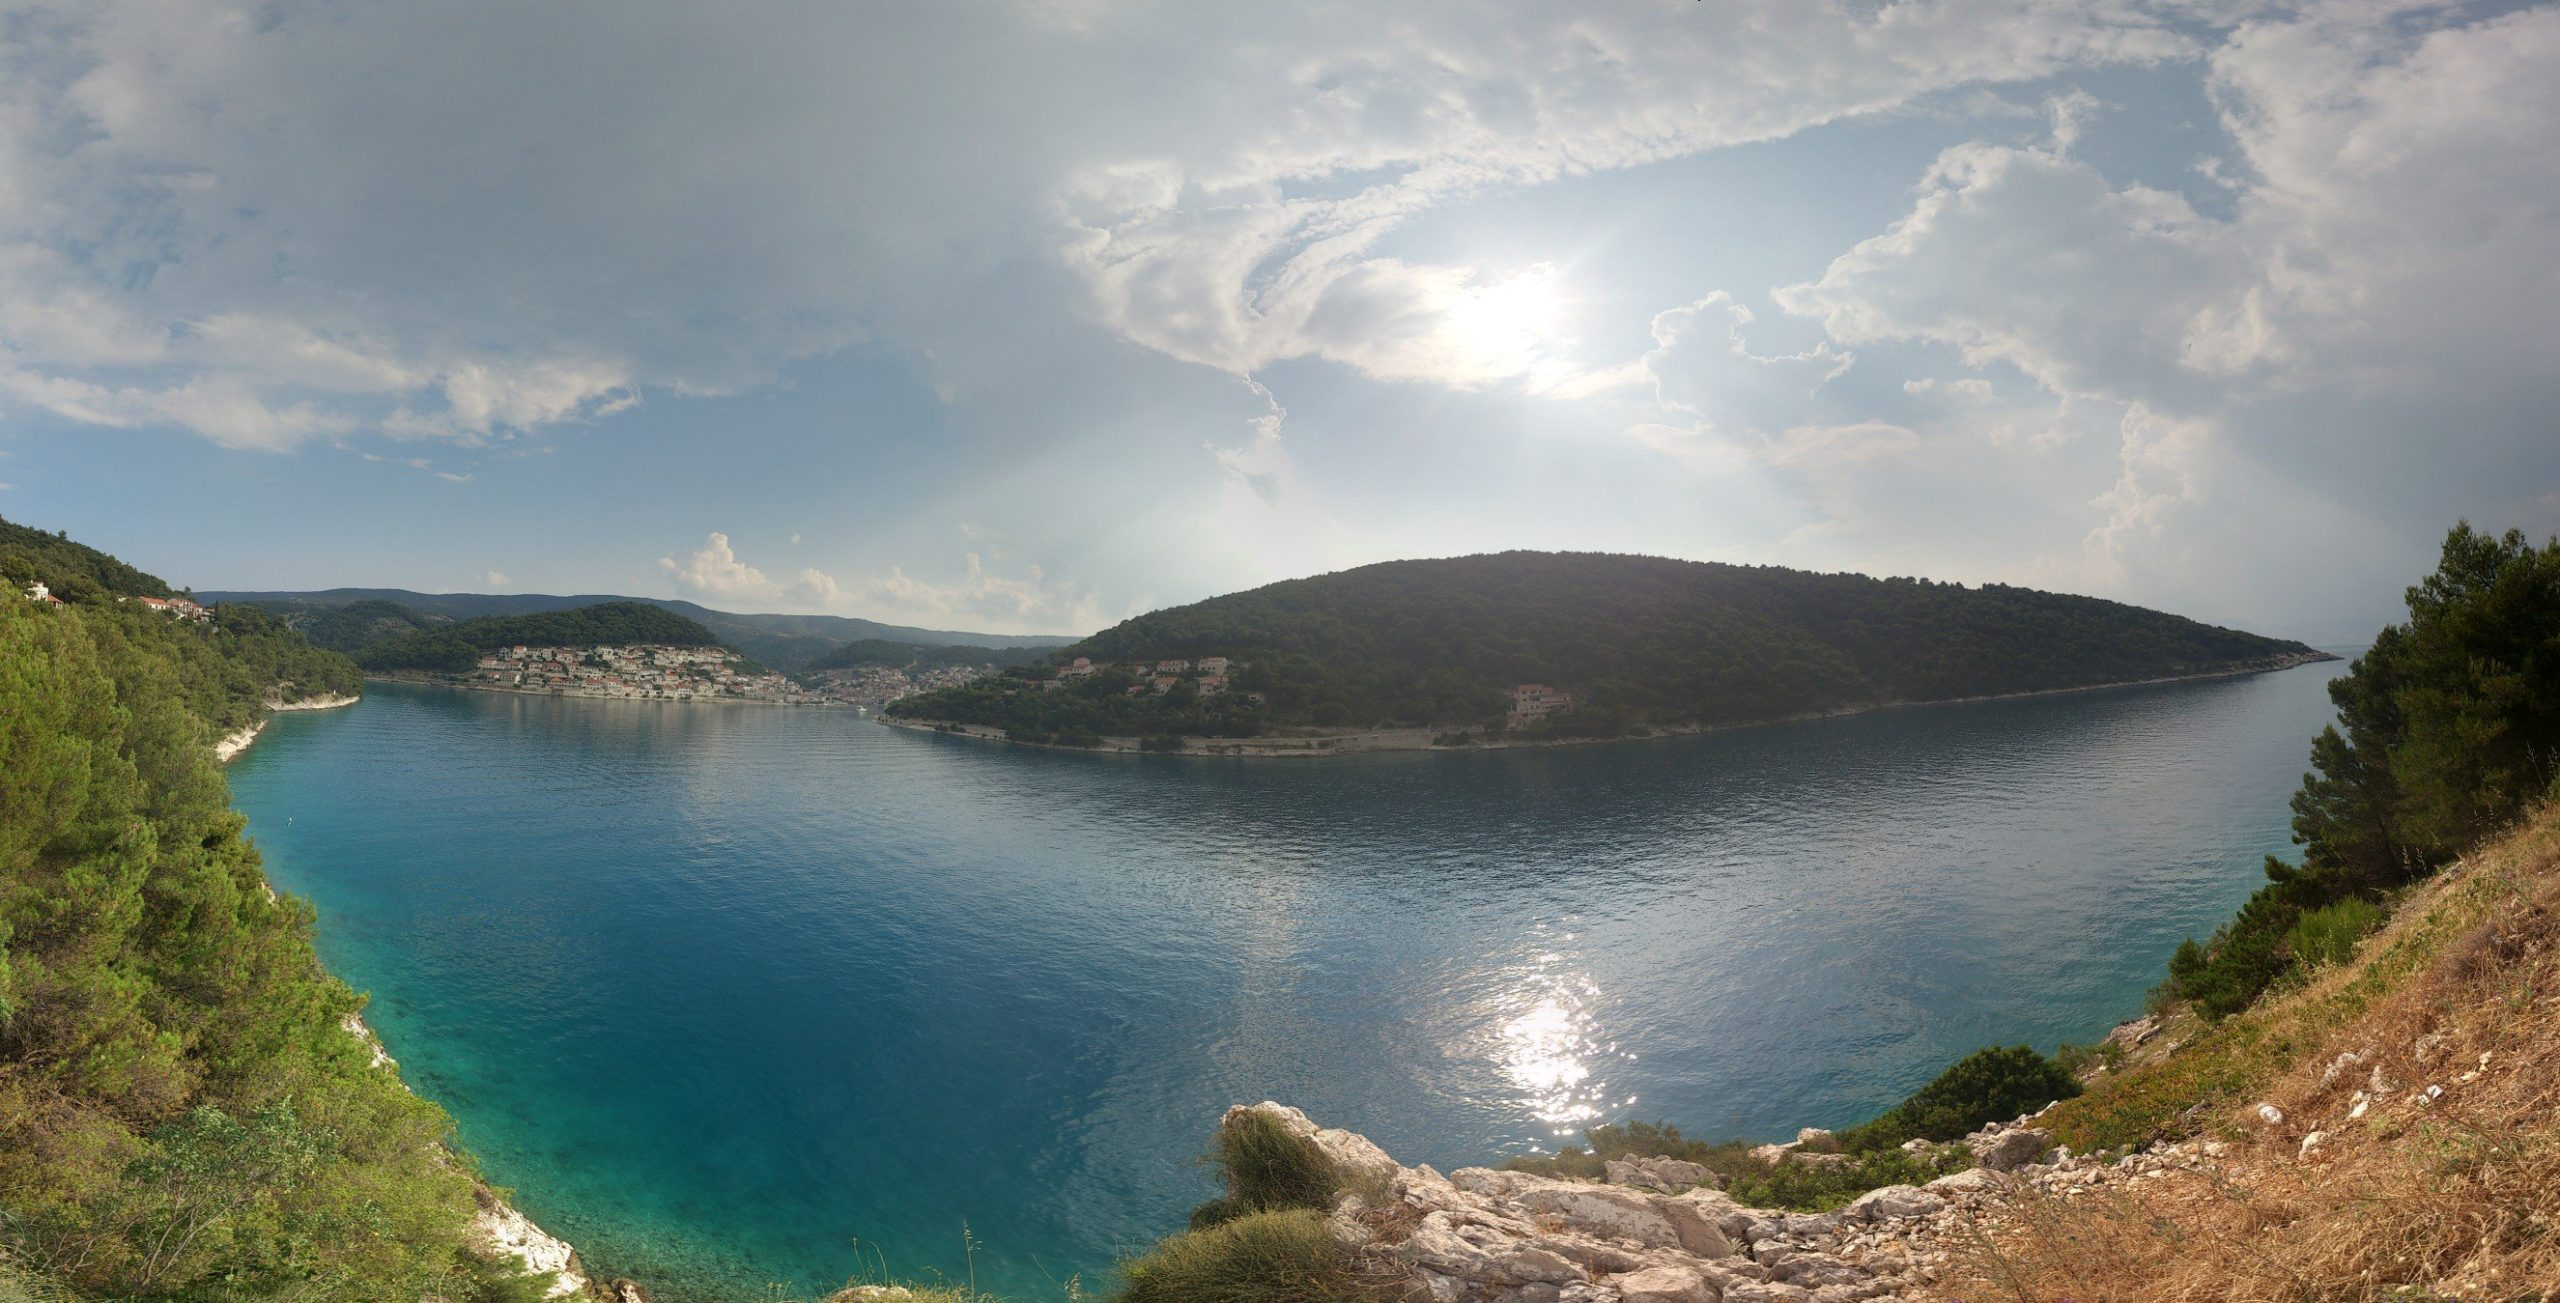 Download Two Hours After Strong Winds And Light Rain The Sun Was Once Again Scorching Pu I  A Bra  Croatia Wallpaper